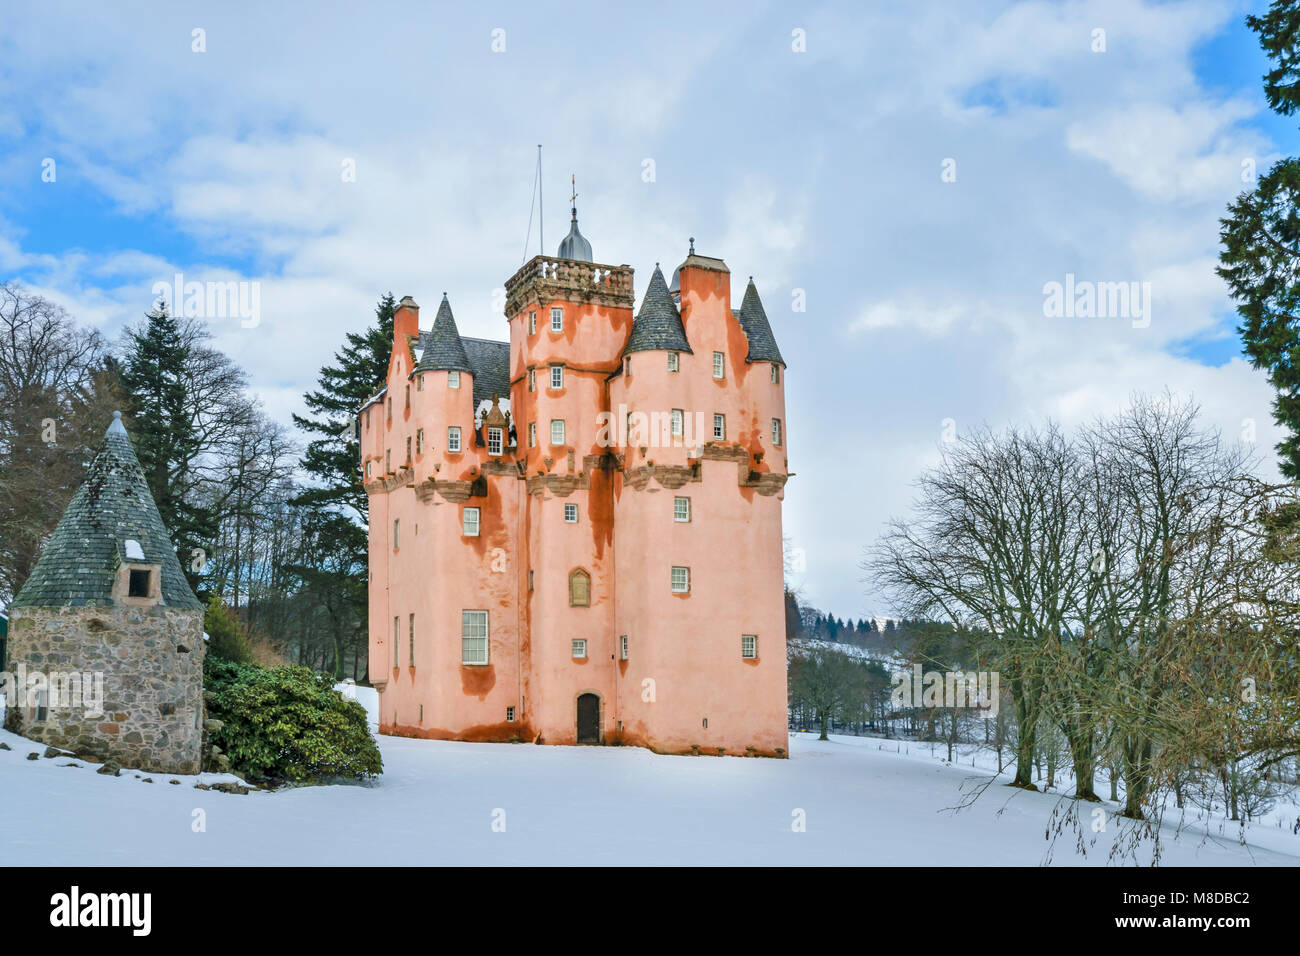 CRAIGIEVAR CASTLE ABERDEENSHIRE SCOTLAND THE PINK TOWER SURROUNDED BY WINTER SNOW  AND EVERGREEN PINE TREES - Stock Image